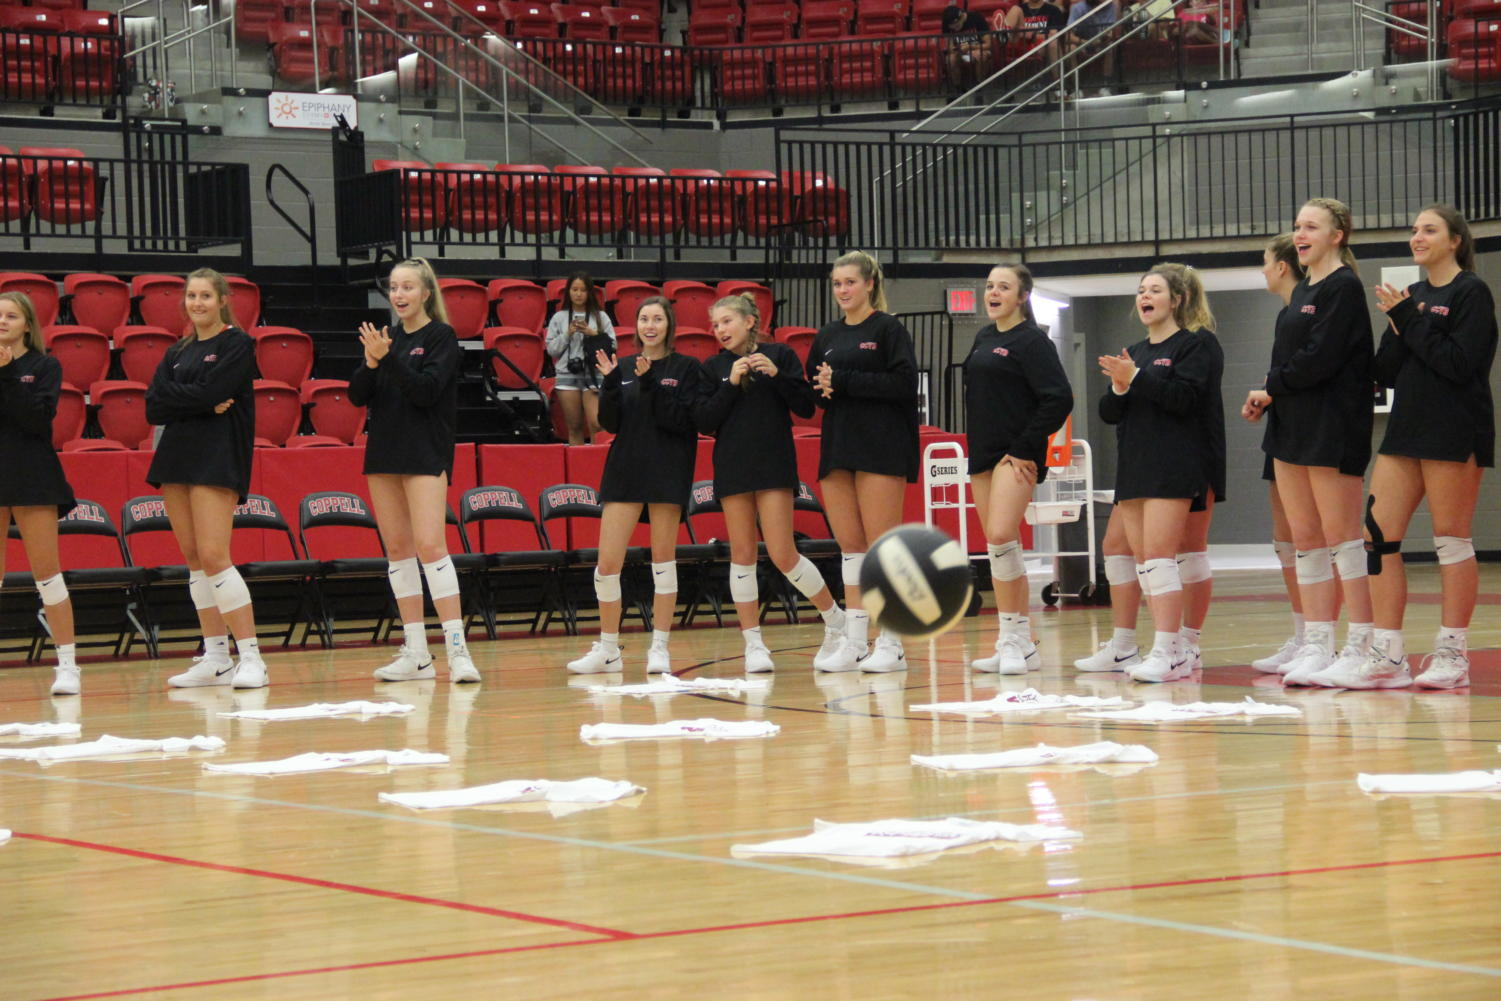 Coppell+varsity+volleyball+players+celebrate+after+an+elementary+school+student+successfully+serves+during+Elementary+Night.+The+Coppell+volleyball+team+hosted+Elementary+Night+on+Tuesday+in+the+CHS+Arena+before+the+varsity+match+against+Arlington+Martin.